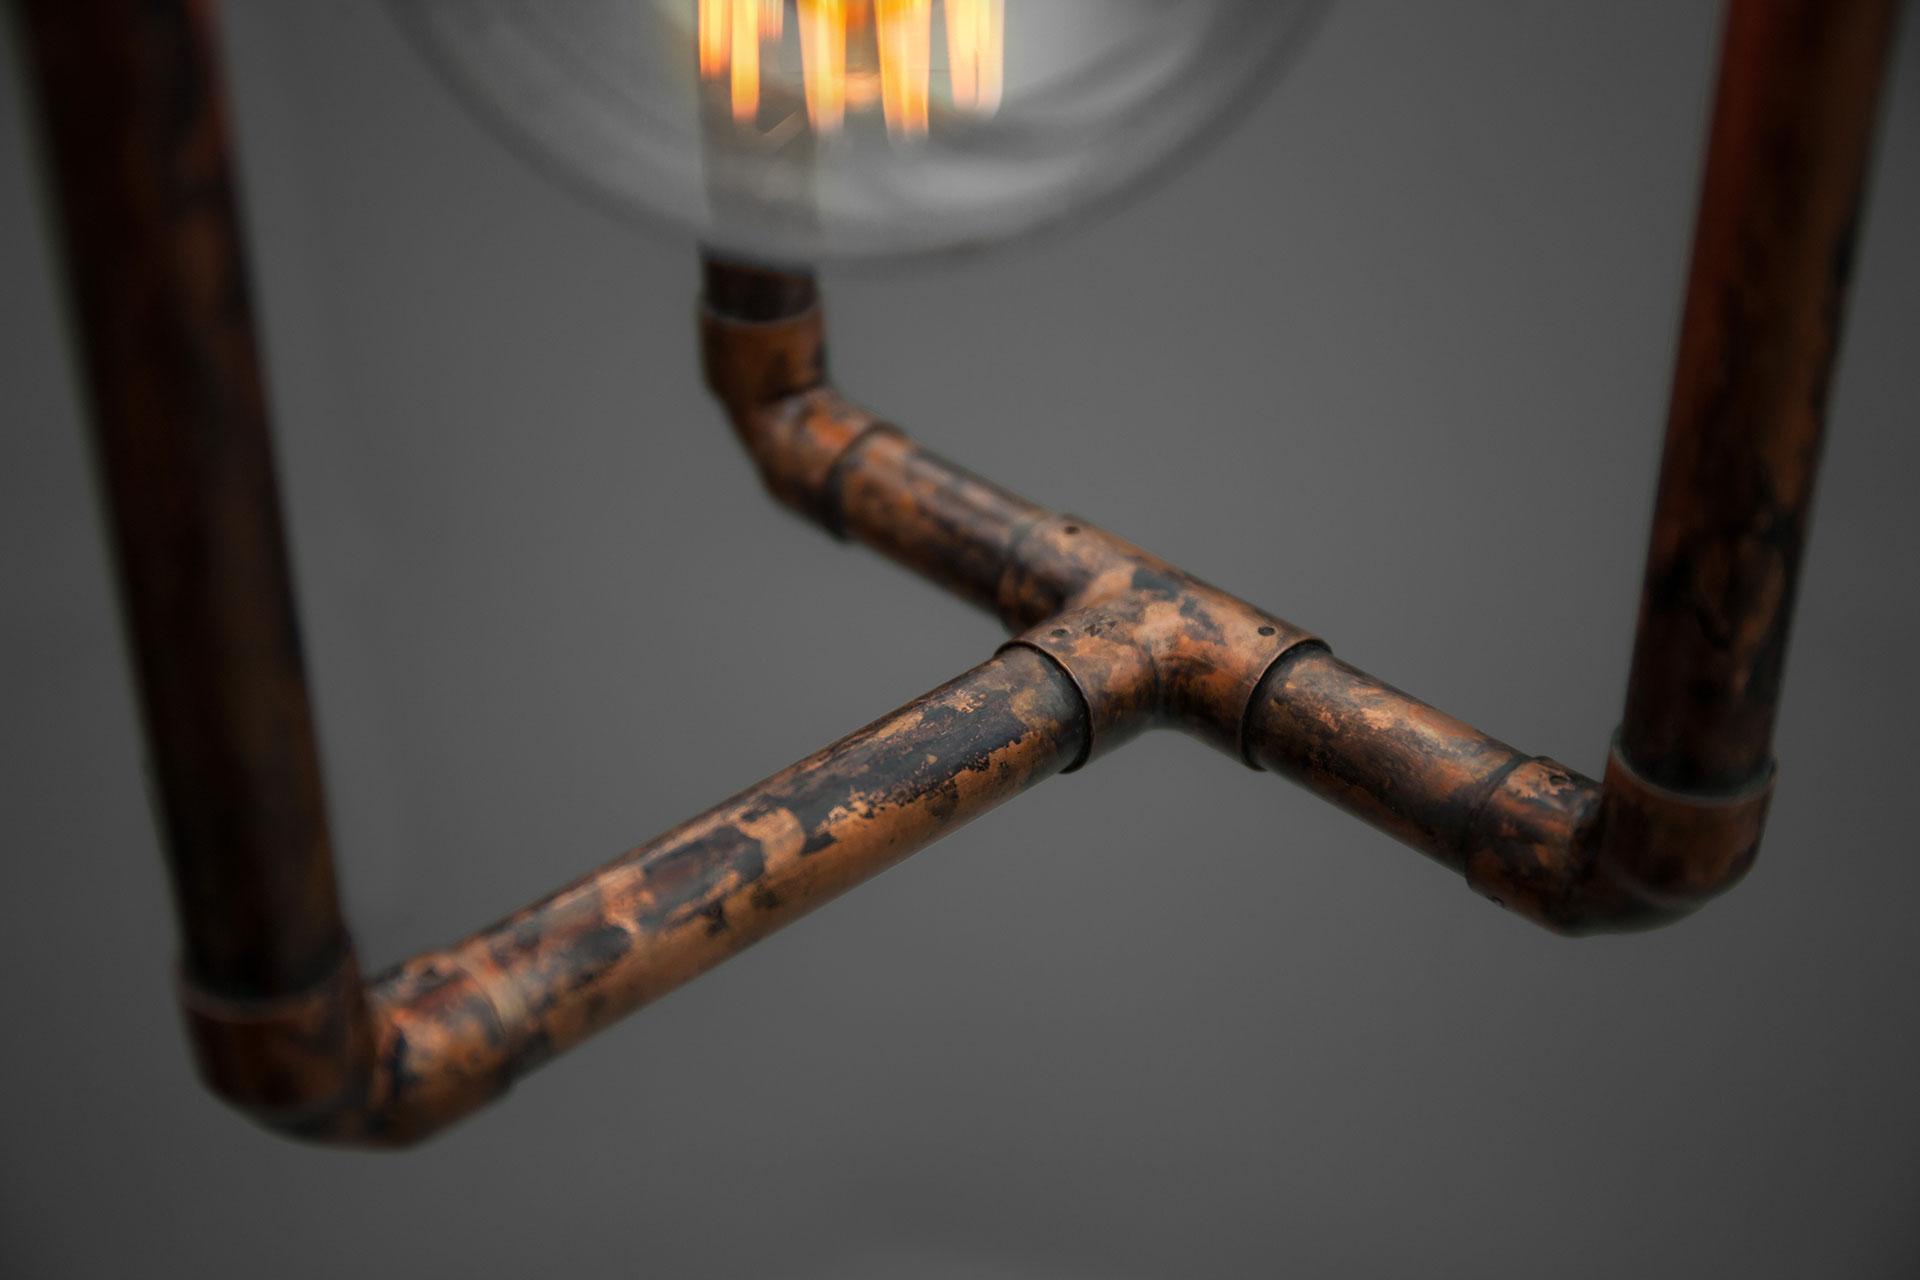 Aged copper metal finish